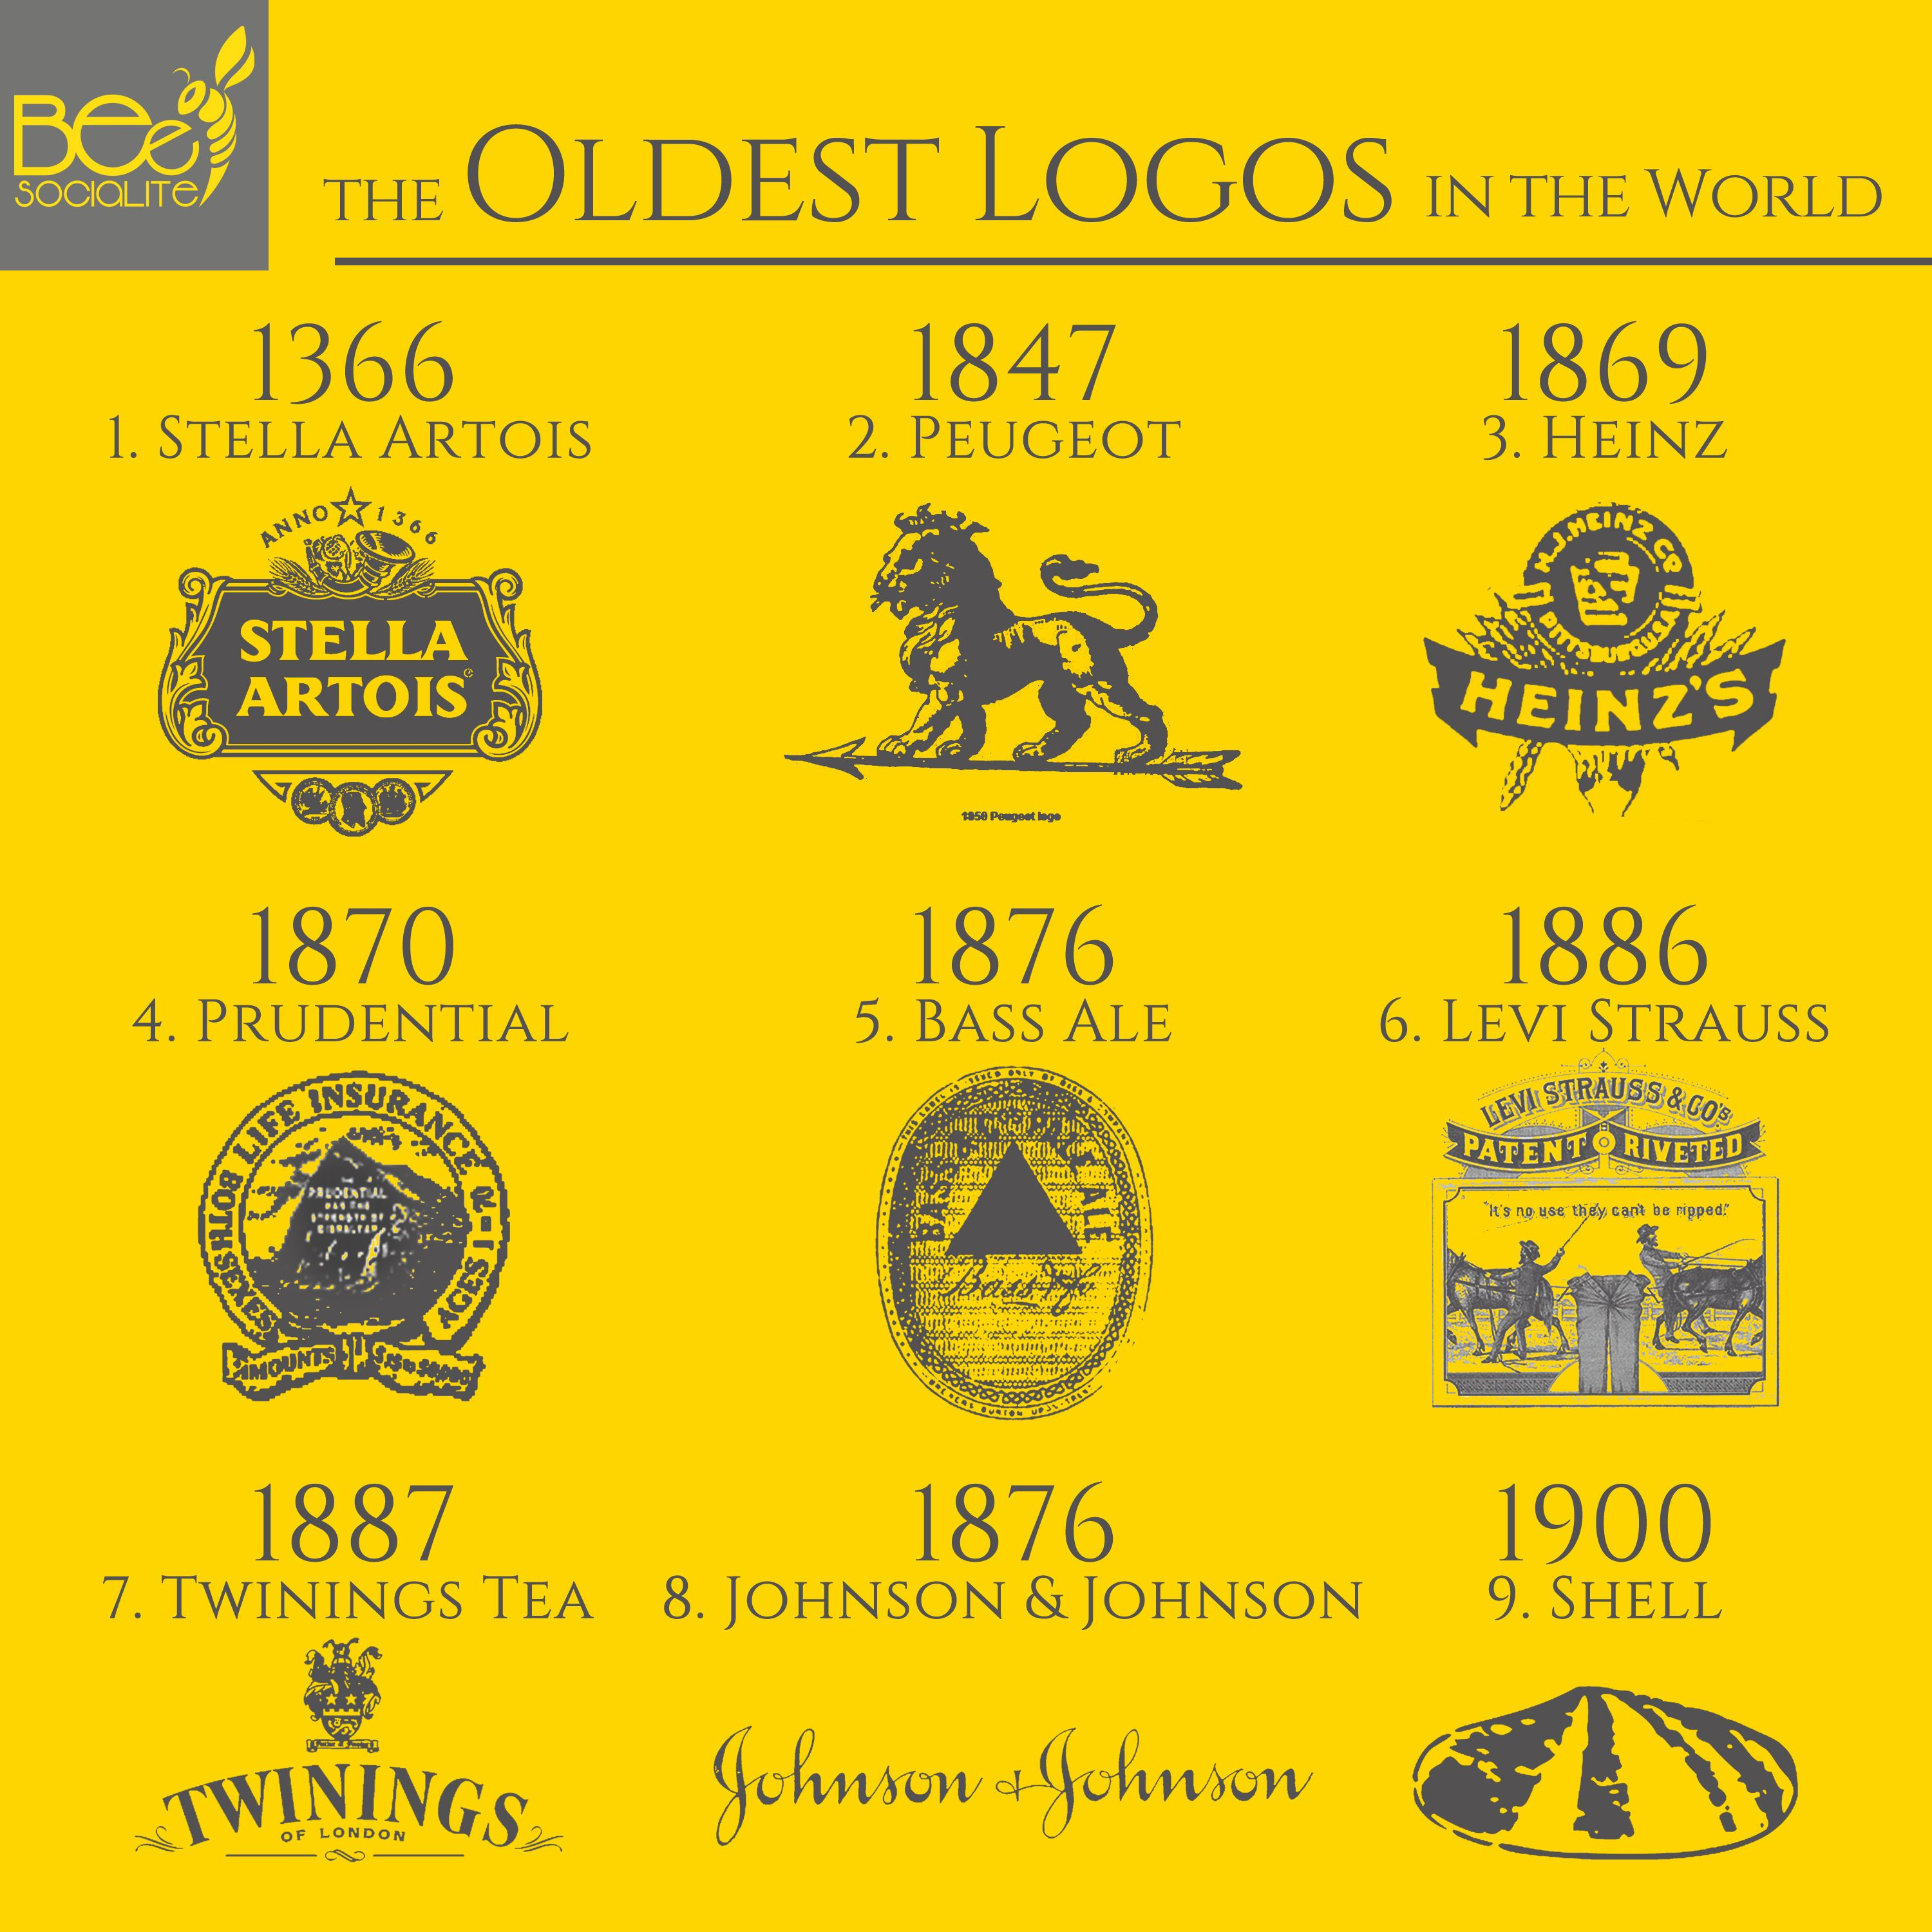 These Are the Oldest Logos in the World 1. Stella Artois